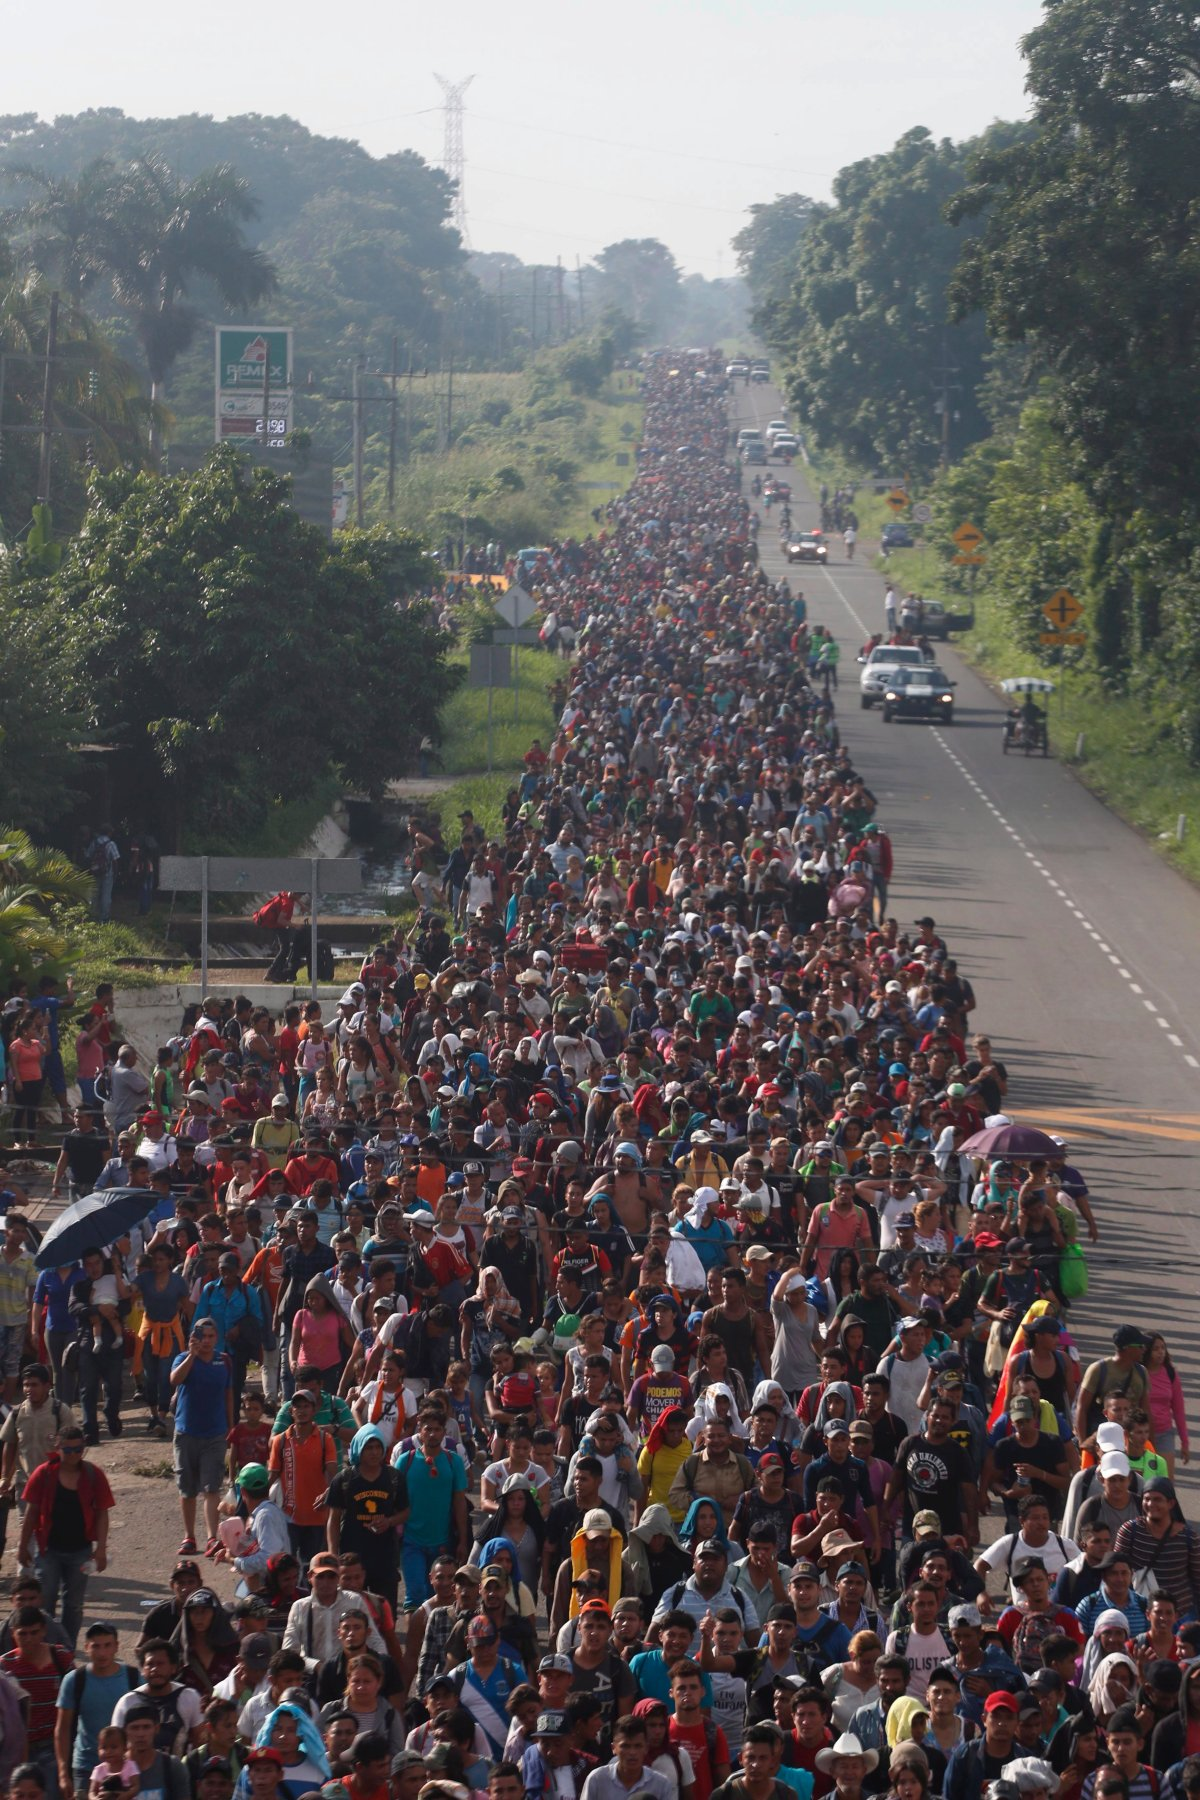 Migrant caravan swells to 5,000 as it marches through Mexico - National | Globalnews.ca